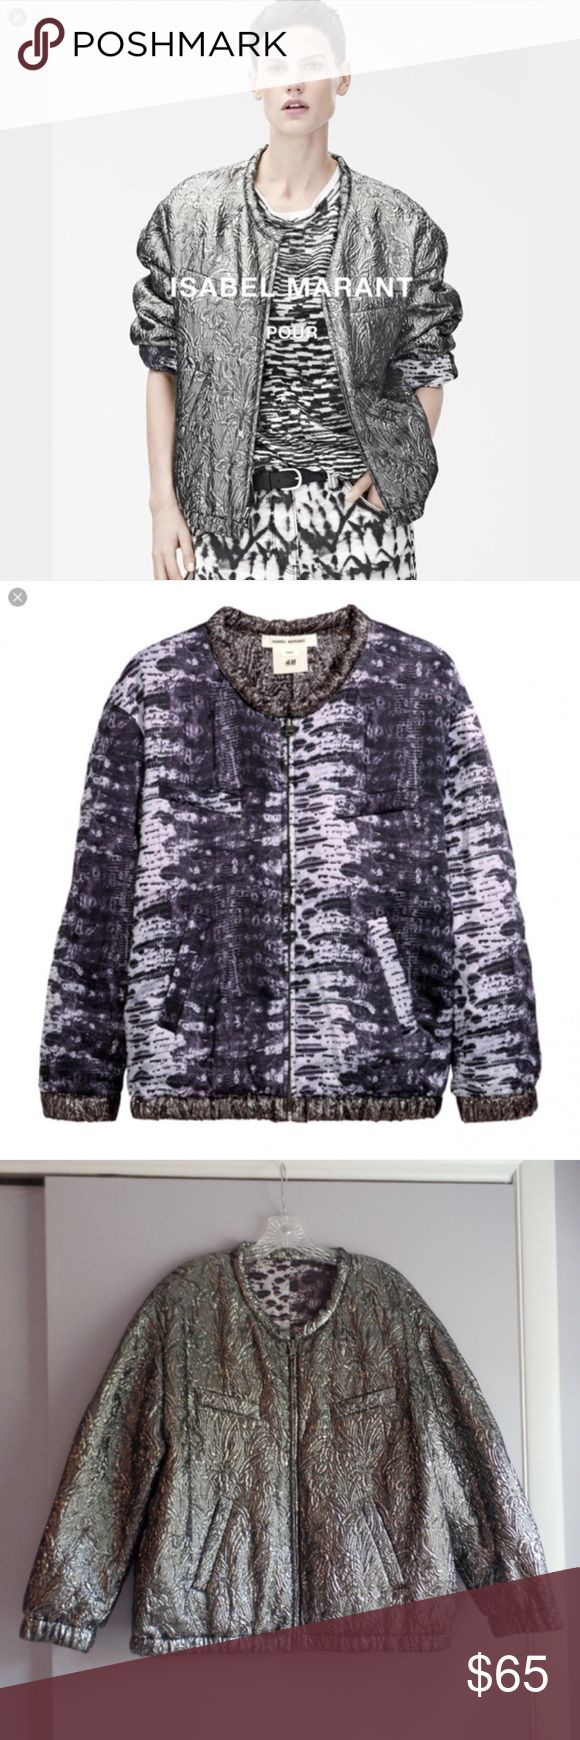 """Isabel Marant Reversible Metallic Bomber Jacket Gorgeous pewter Metallic zip up bomber jacket that reverses to a purple silk snakeprint pattern. Generous fit, would fit 12/14. Measures 25"""" across bust, and 25.5"""" in length. Great condition, just a little too big for me Isabel Marant pour H&M Jackets & Coats"""